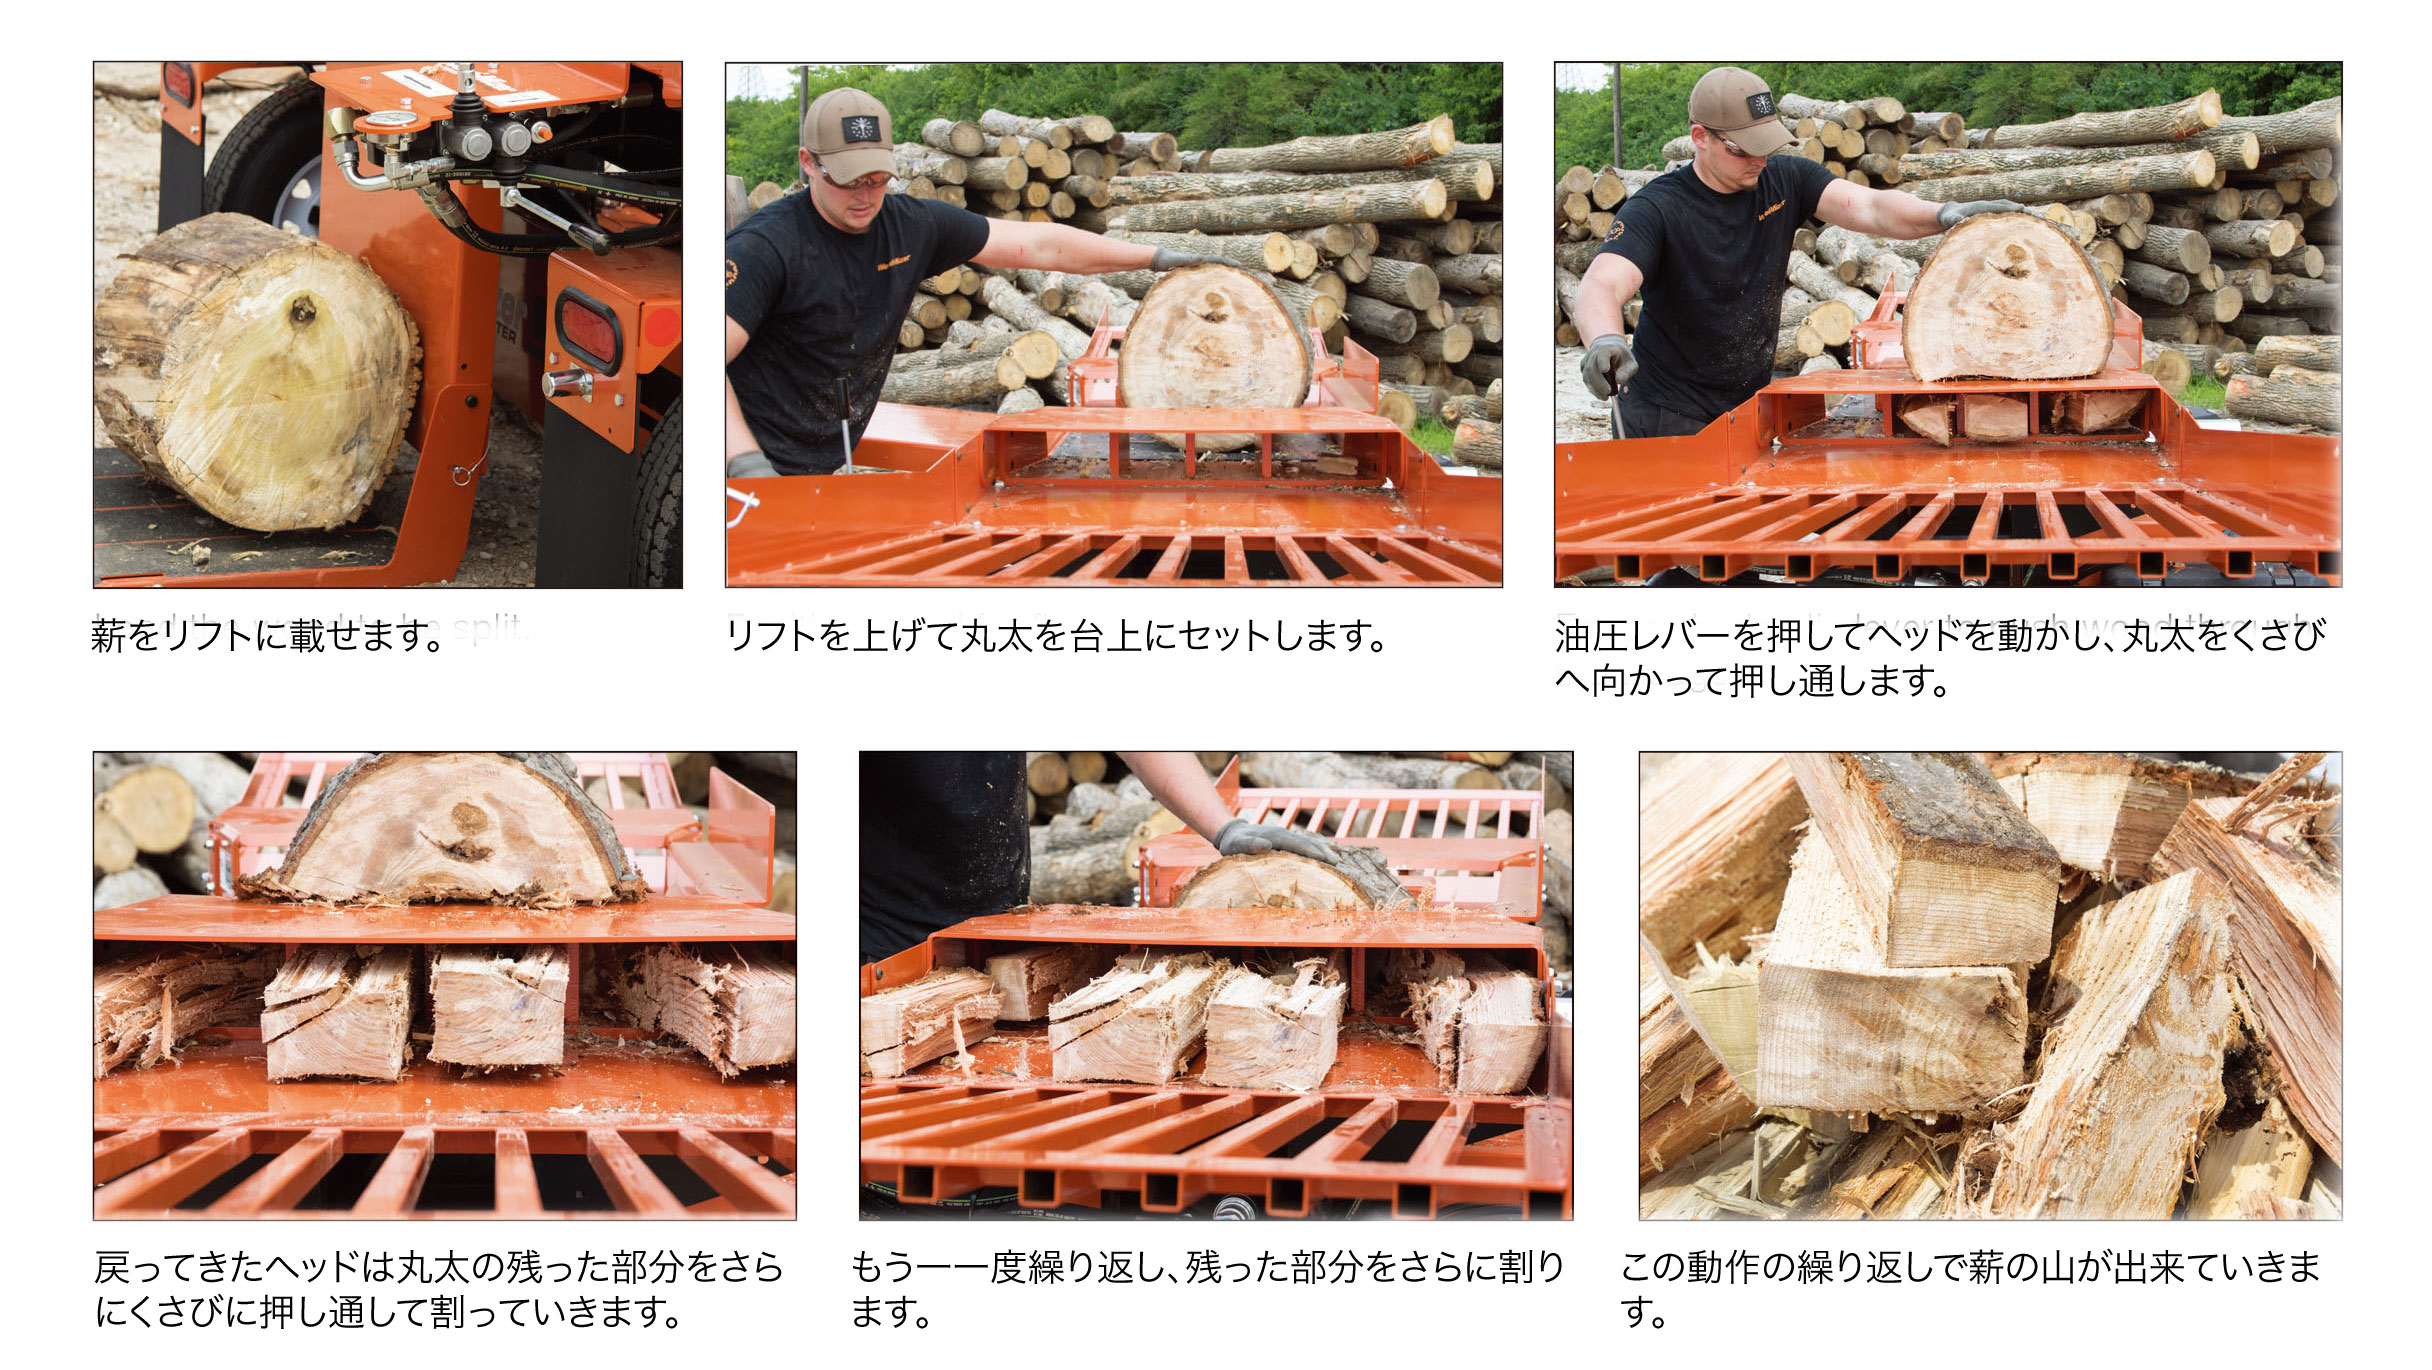 woodmizer-fs500-catalogedit-01